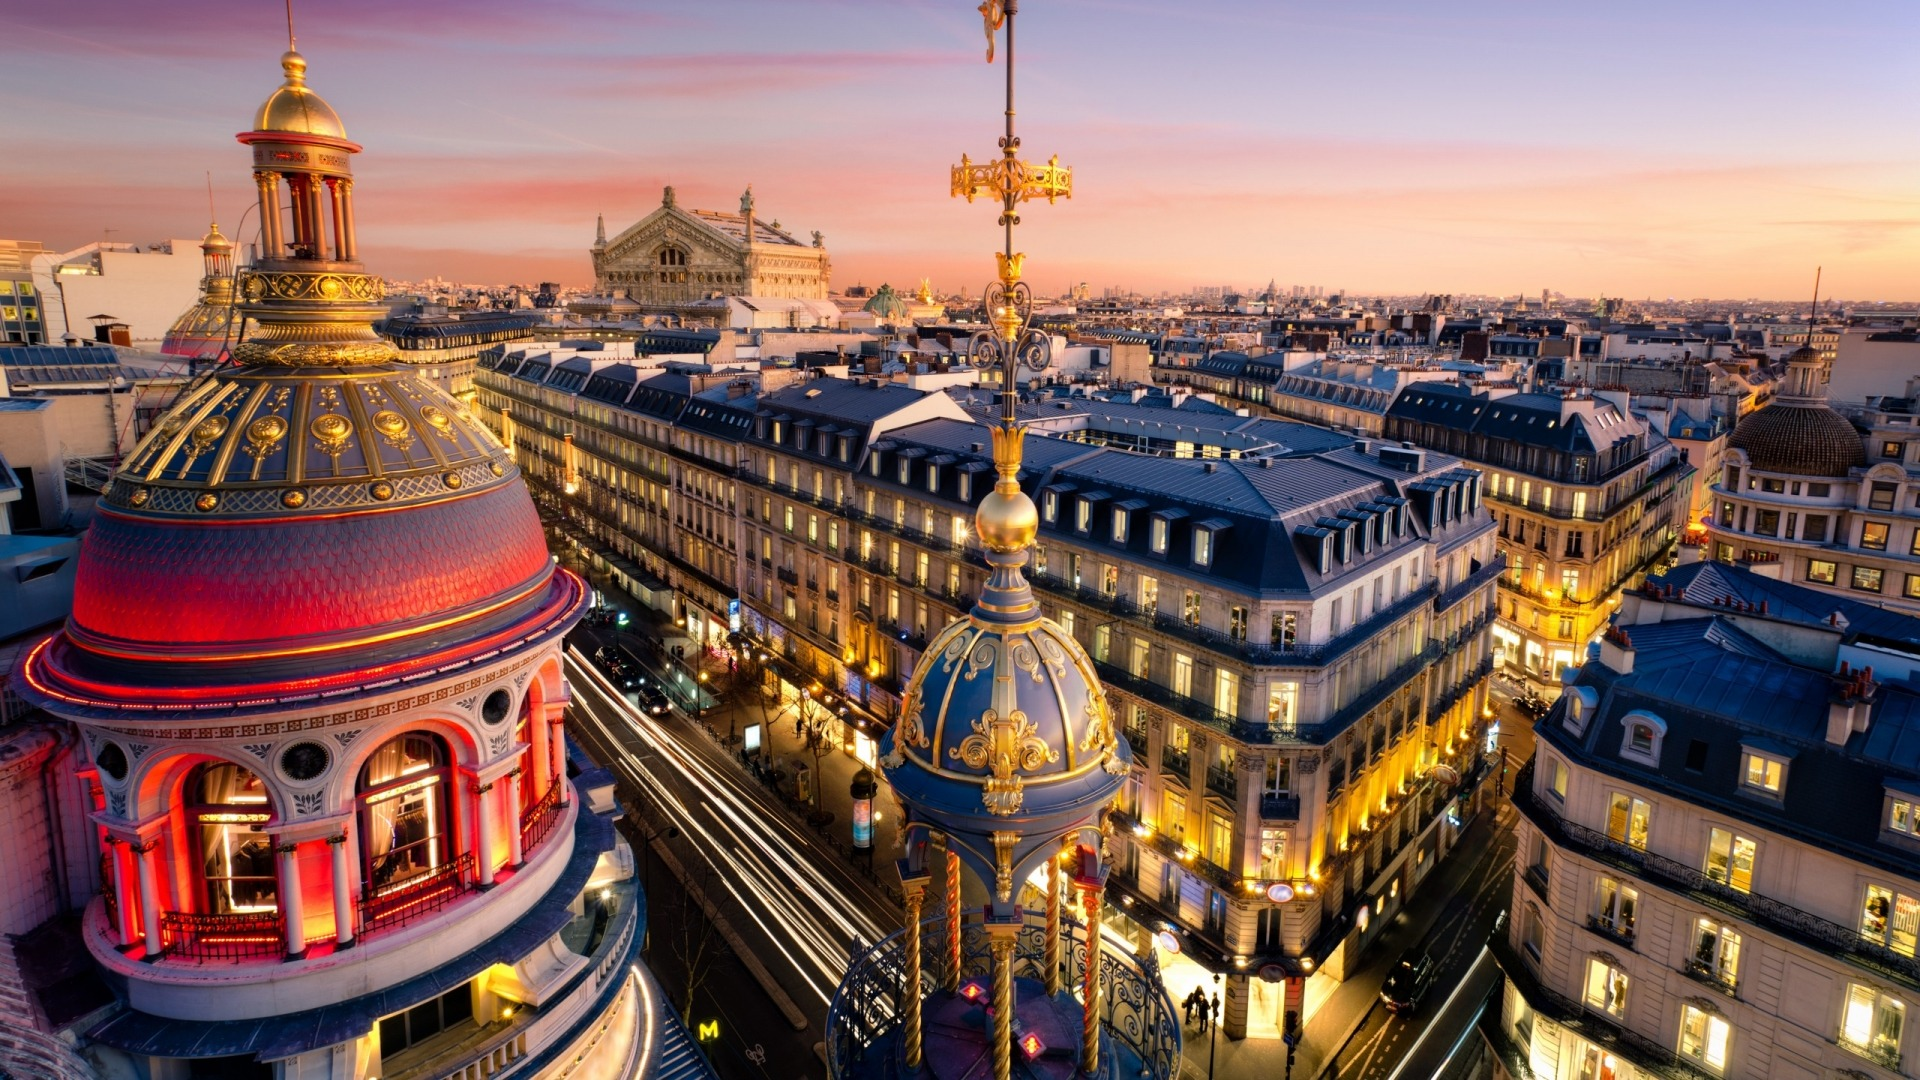 Must see Wallpaper High Quality Paris - free-hd-majestic-paris-city-wallpapers-download  Image_521171.jpg